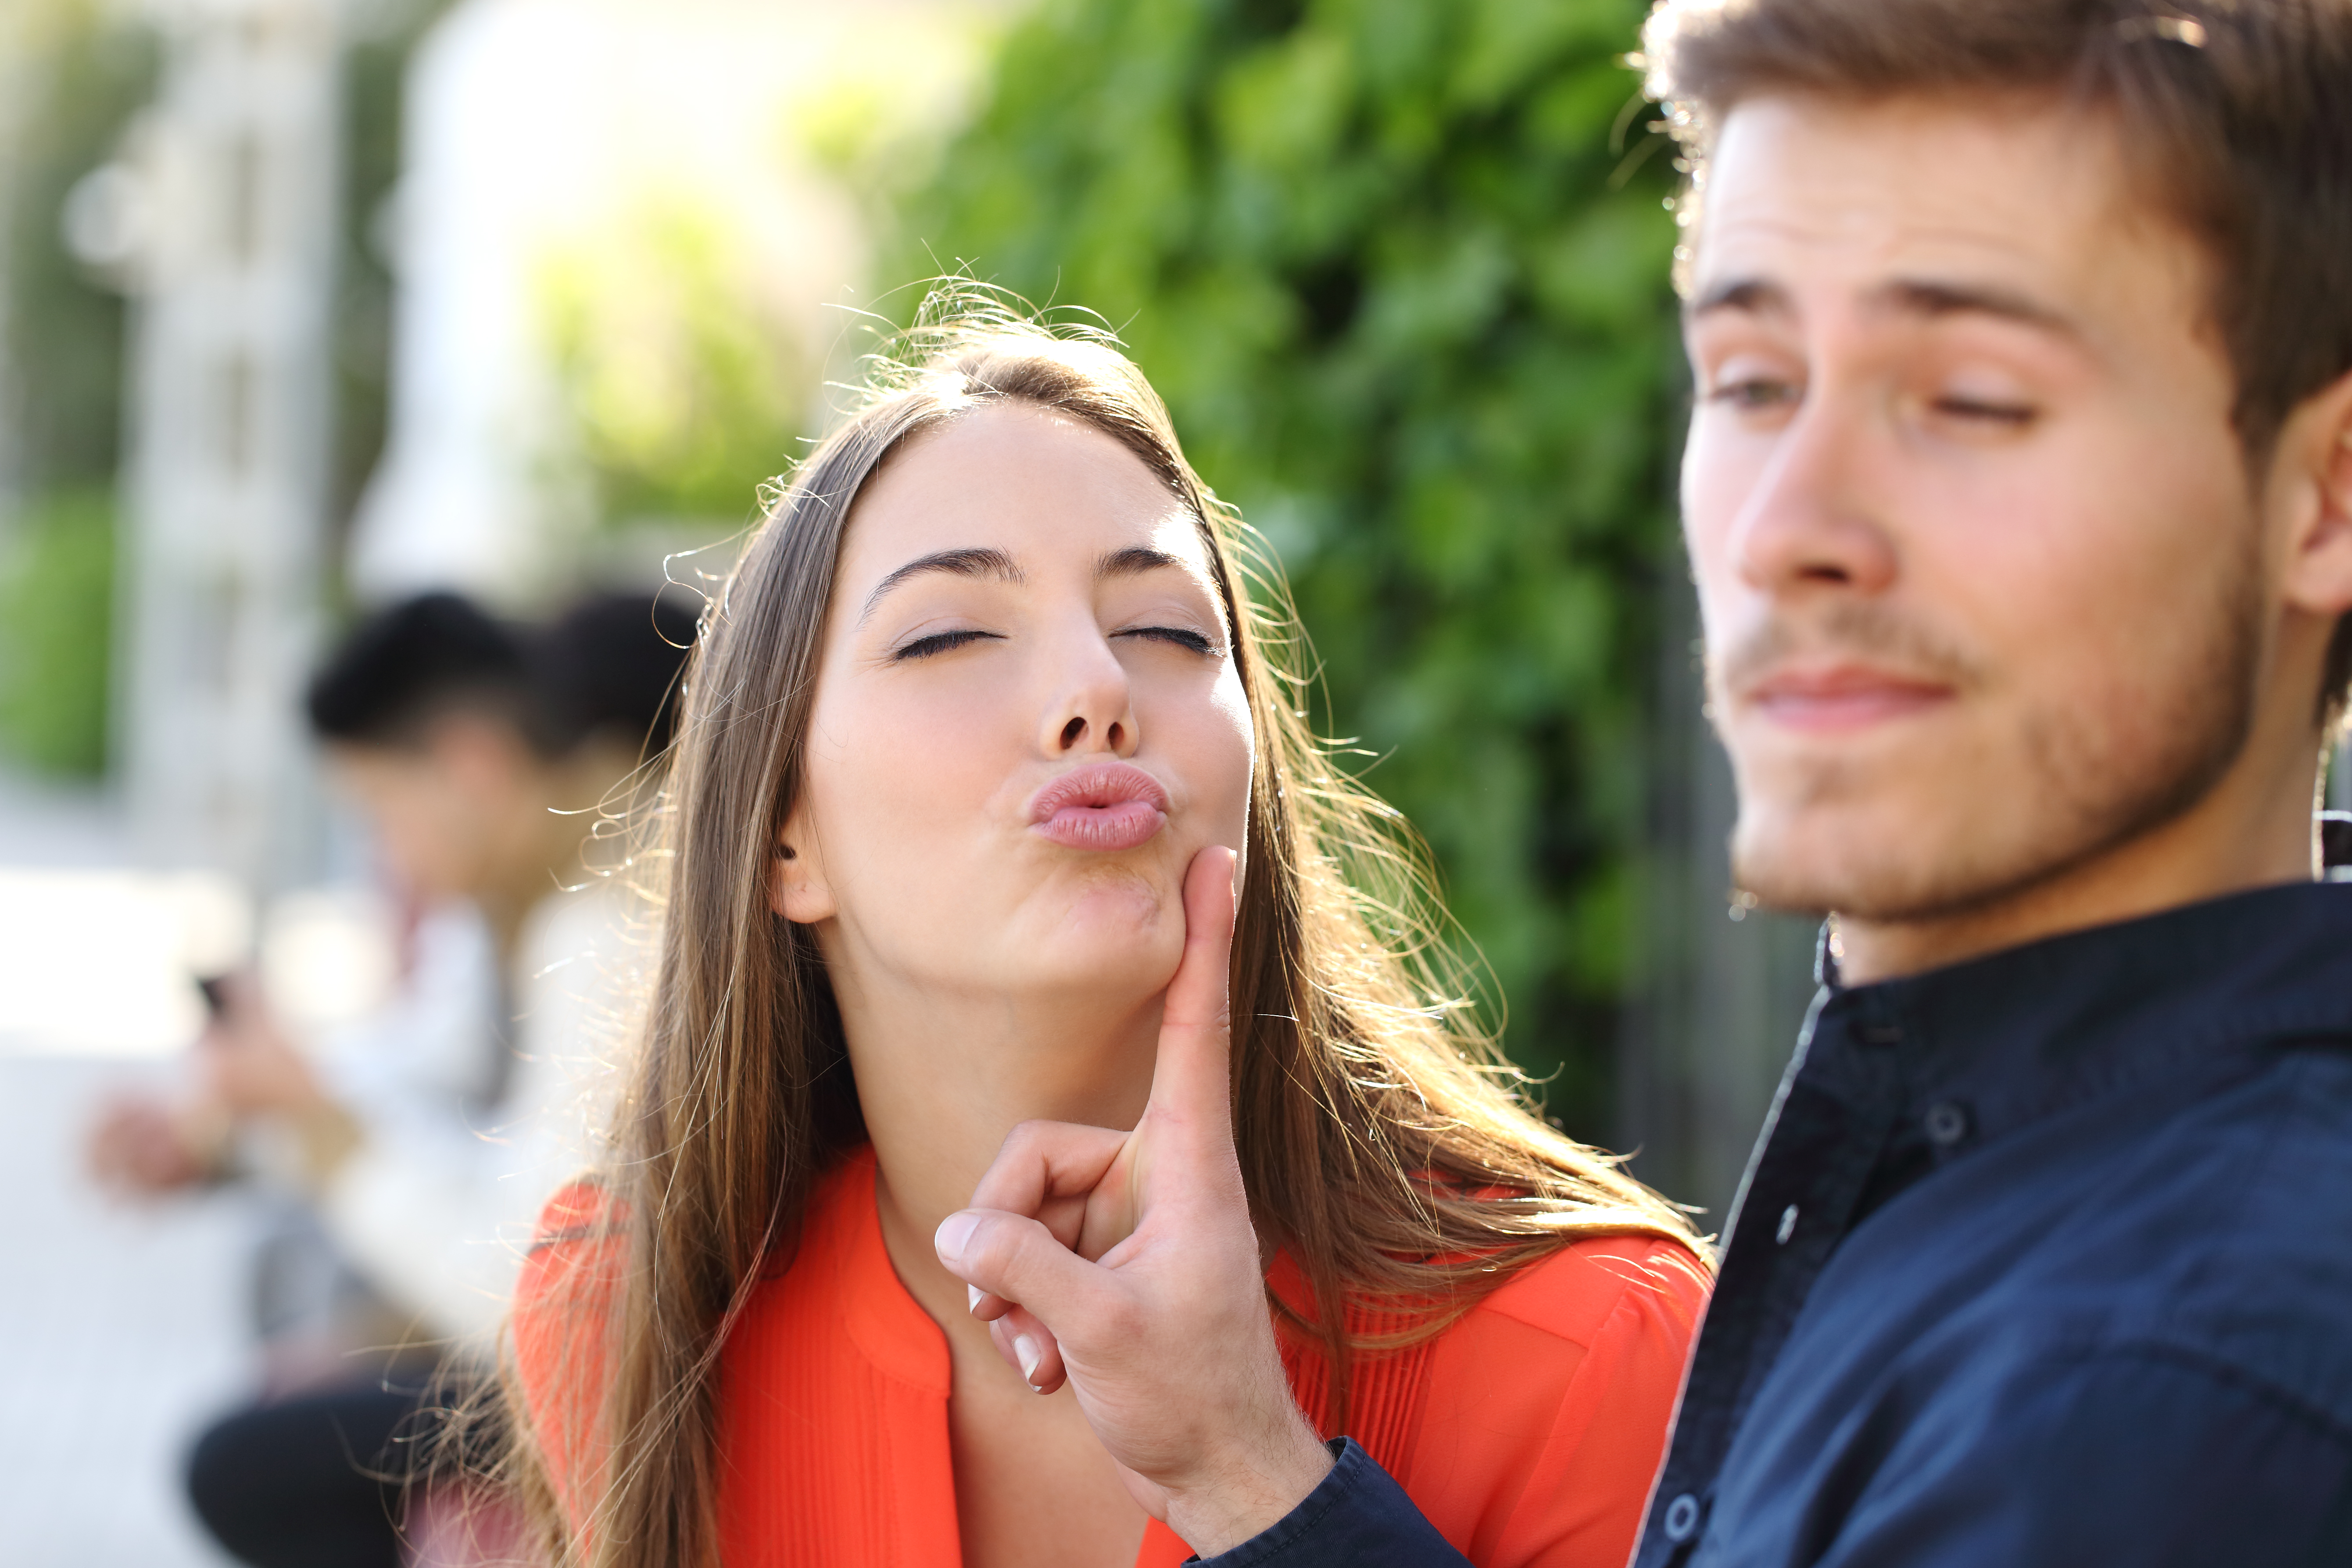 7 Ways You Know A Girl Likes You As More Than A Friend